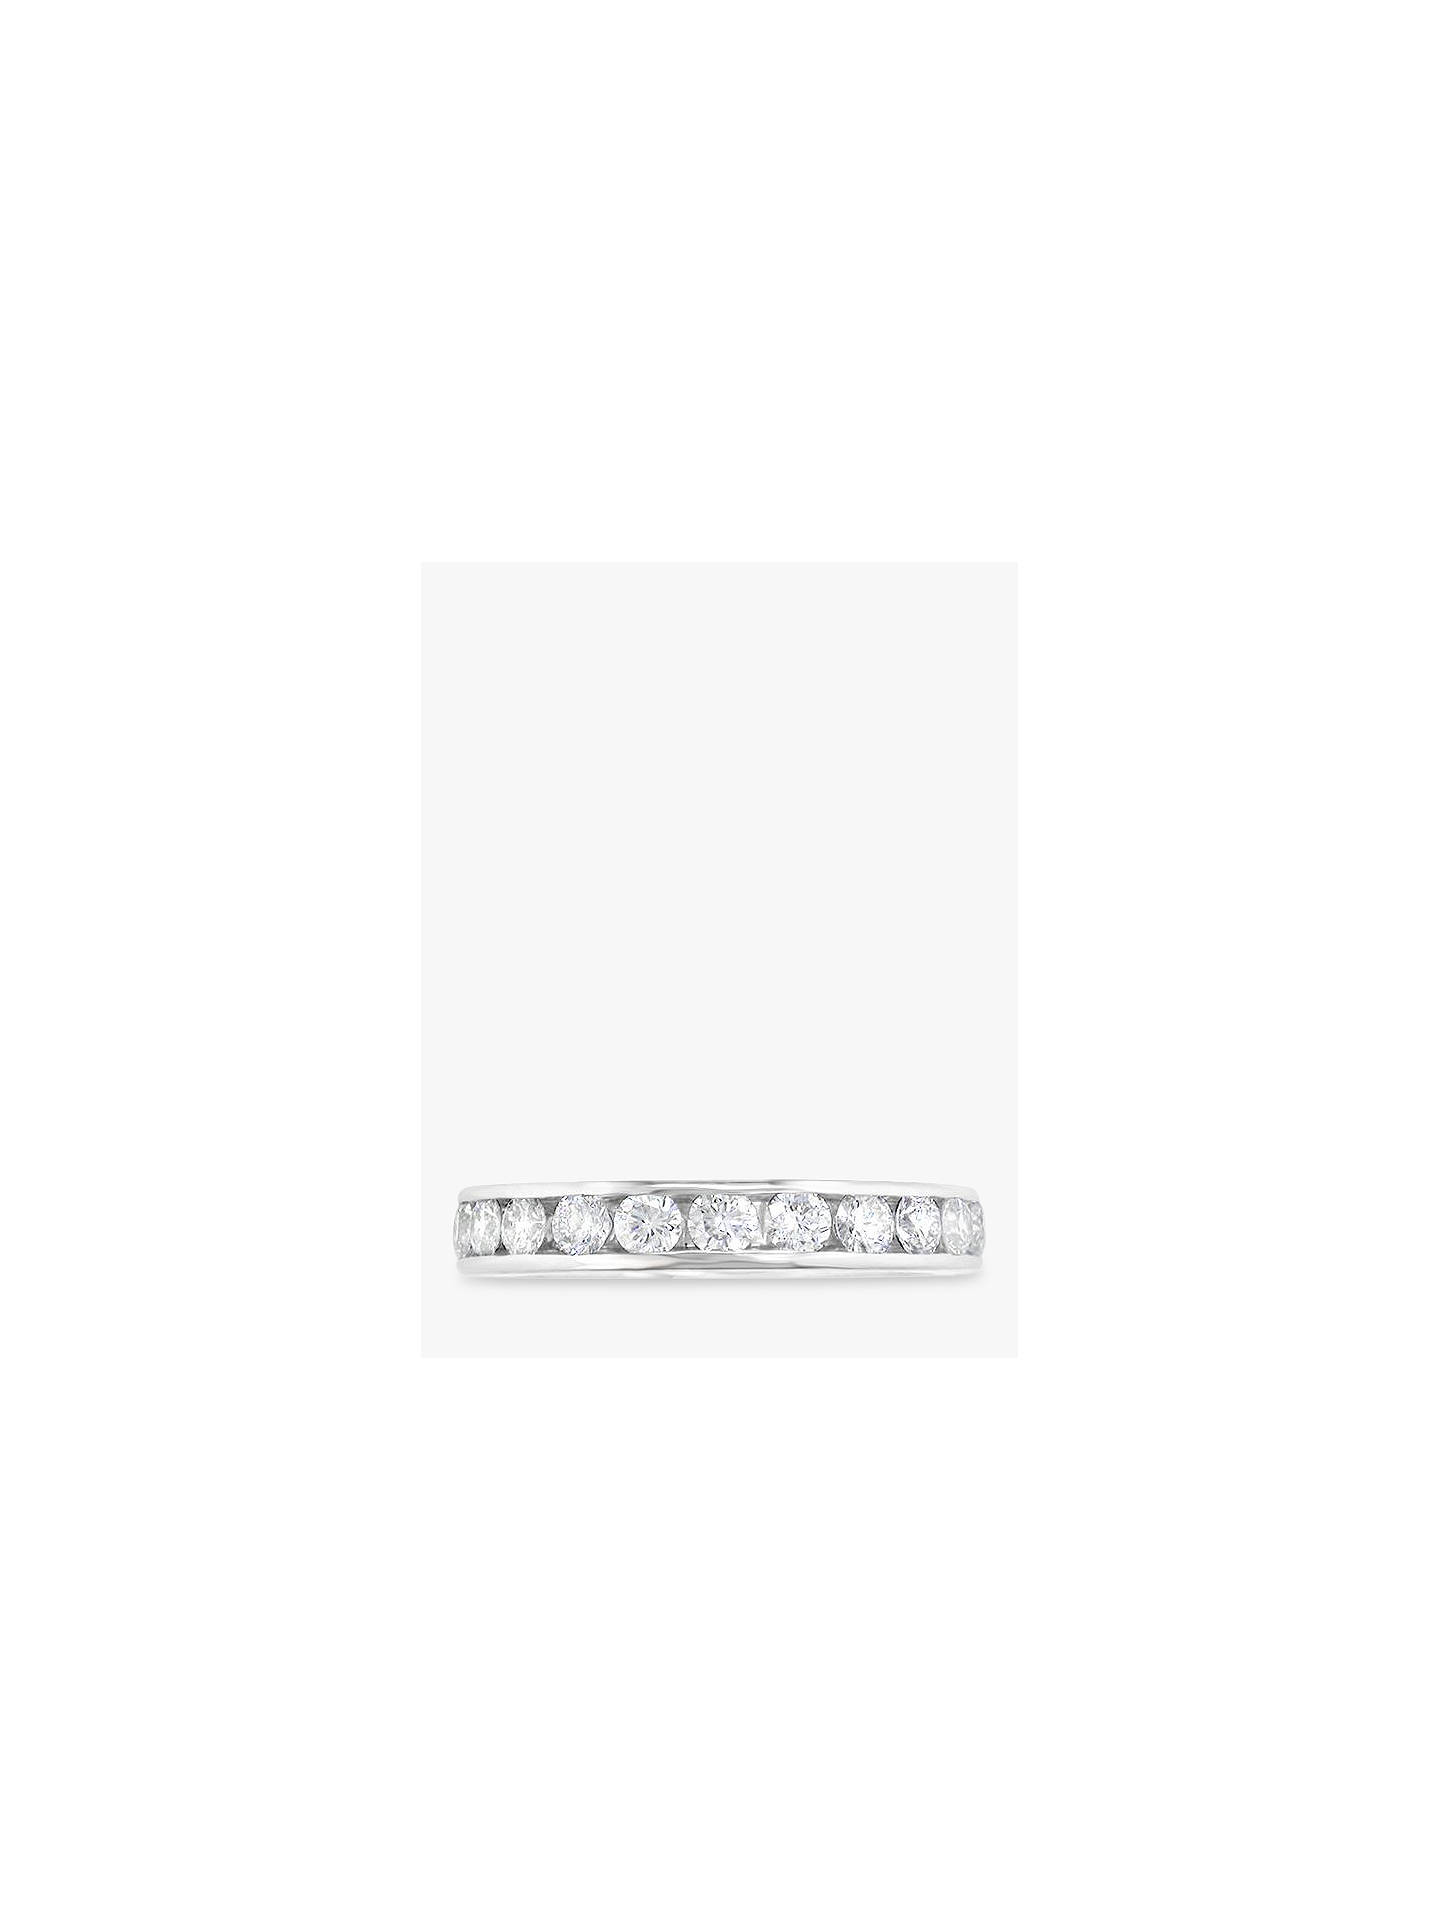 BuyEWA Platinum Channel Set Brilliant Cut Diamond Full Eternity Ring, 1.08ct Online at johnlewis.com